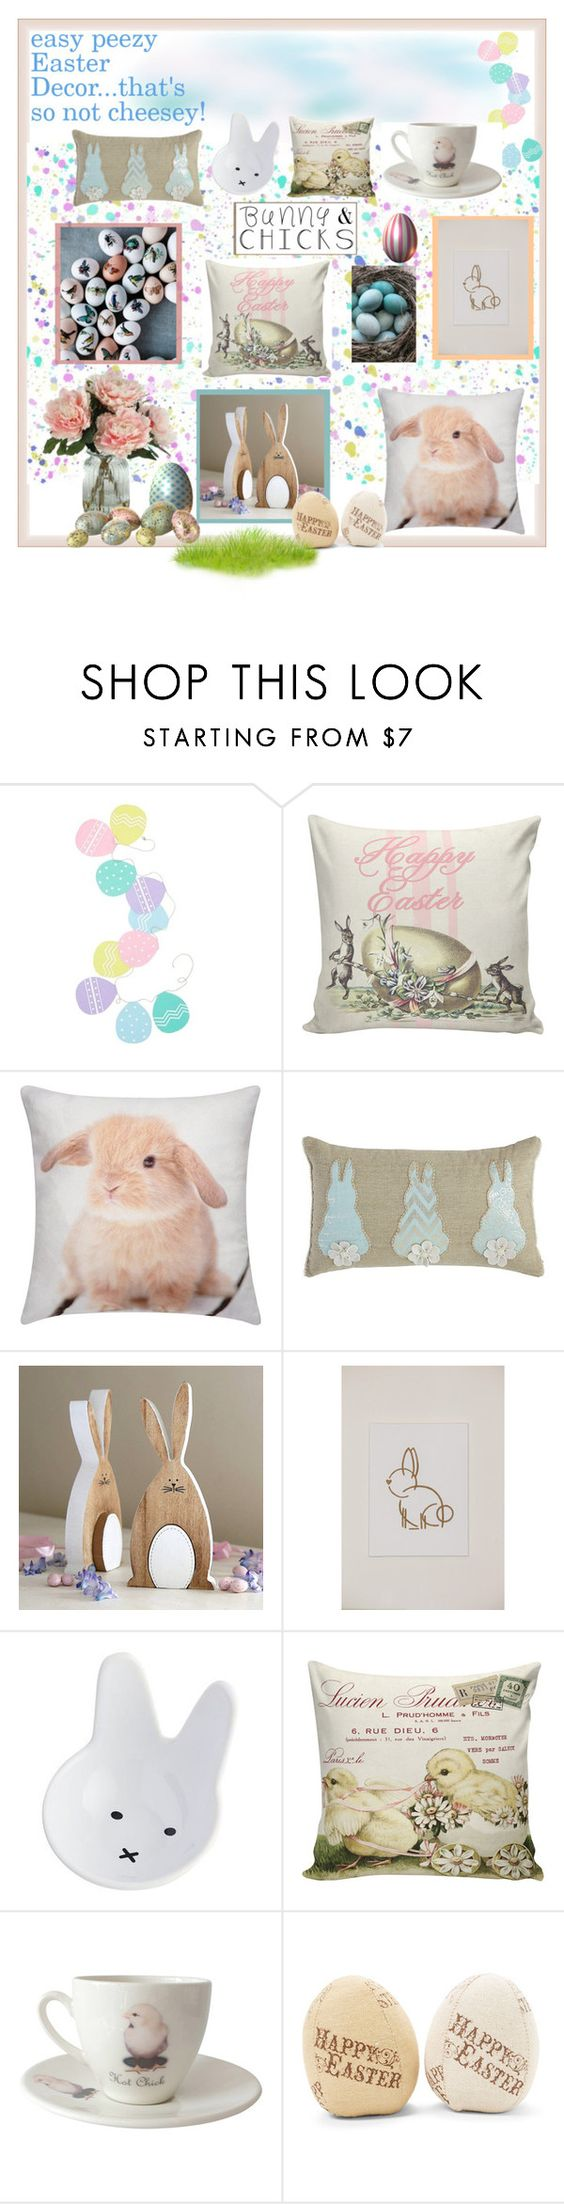 """""""Easy Peezy Easter"""" by jennross76 ❤ liked on Polyvore featuring interior, interiors, interior design, home, home decor, interior decorating, Levtex, Pier 1 Imports, Outlandish Creations and bunnieschicks"""